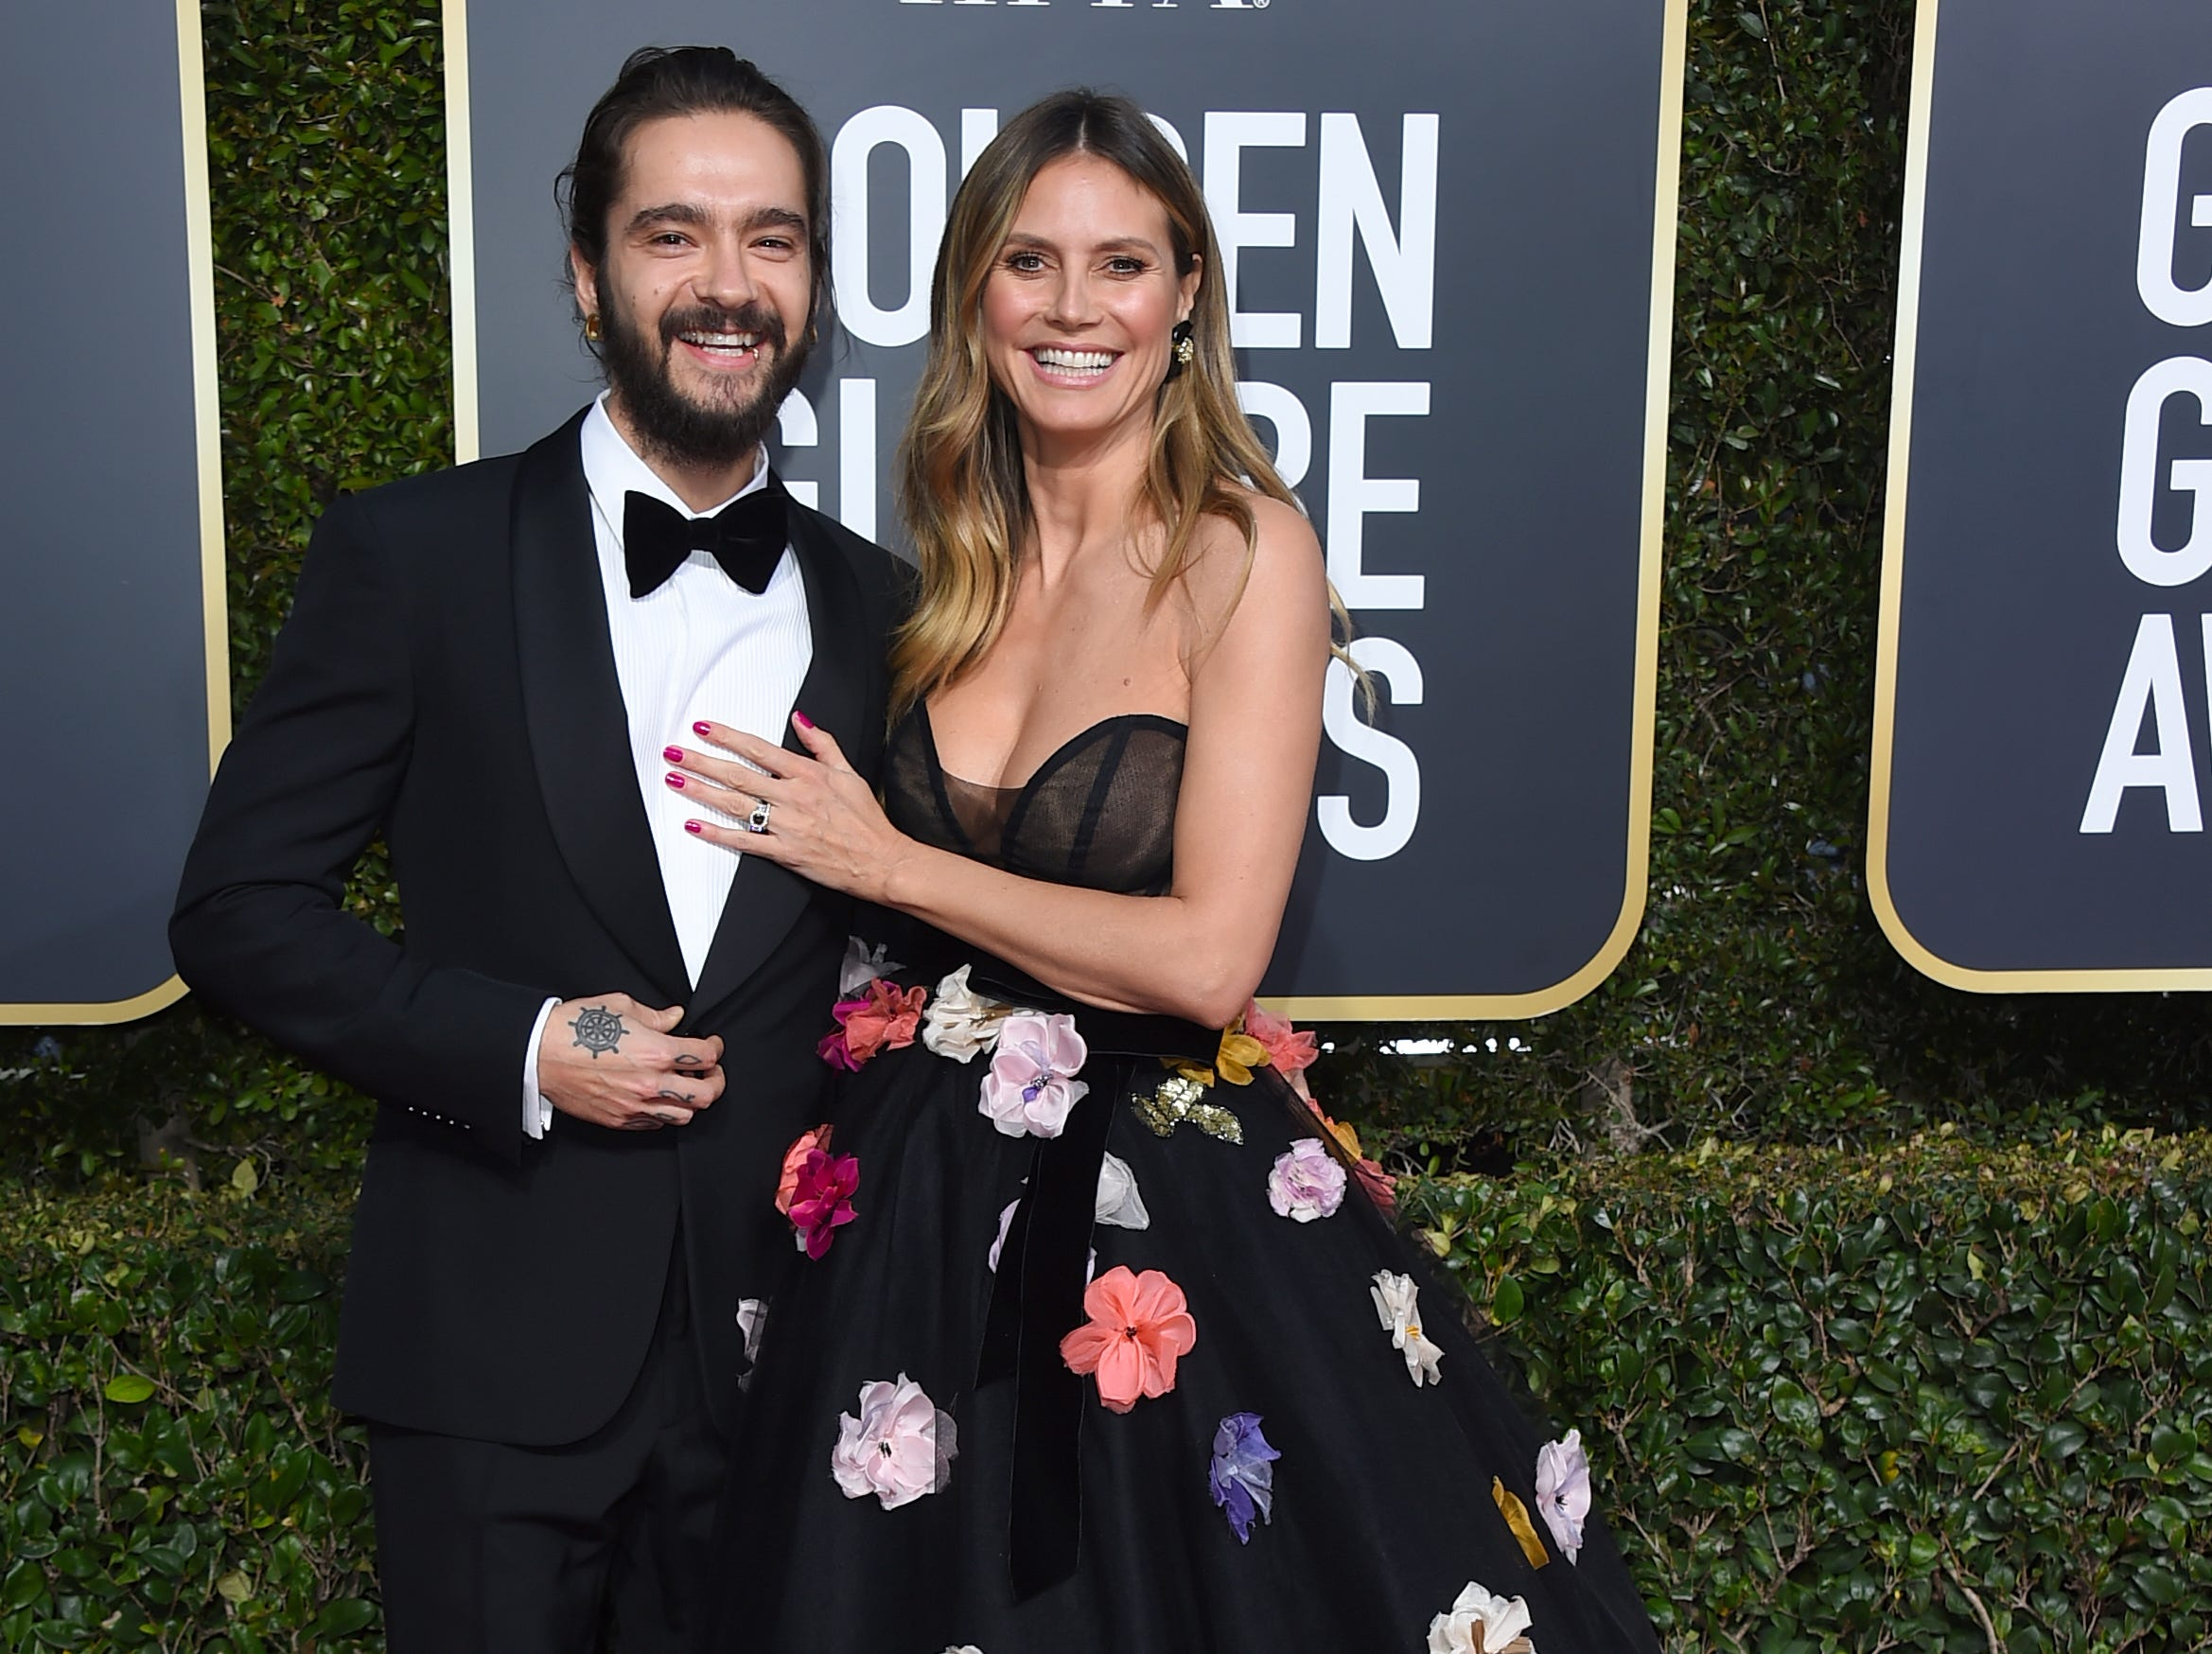 Tom Kaulitz, left, and Heidi Klum arrive at the 76th annual Golden Globe Awards at the Beverly Hilton Hotel.